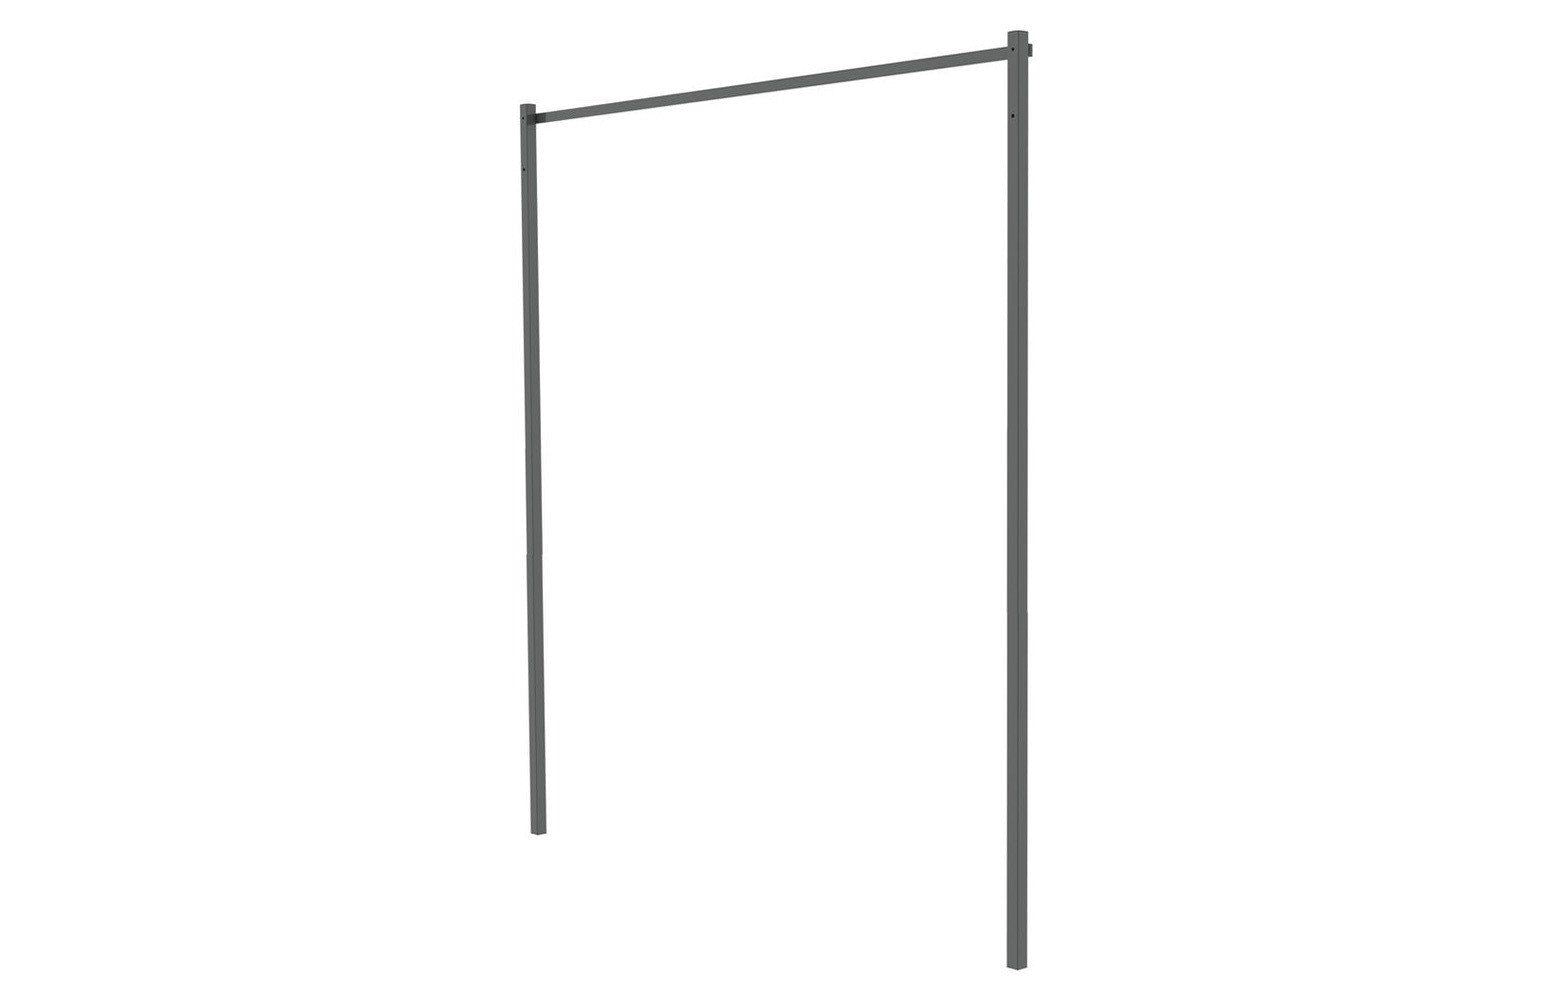 Hills Folding Frame Ground Mount Kit - Fold Down Accessory - Hills - Clothesline Installation Australia